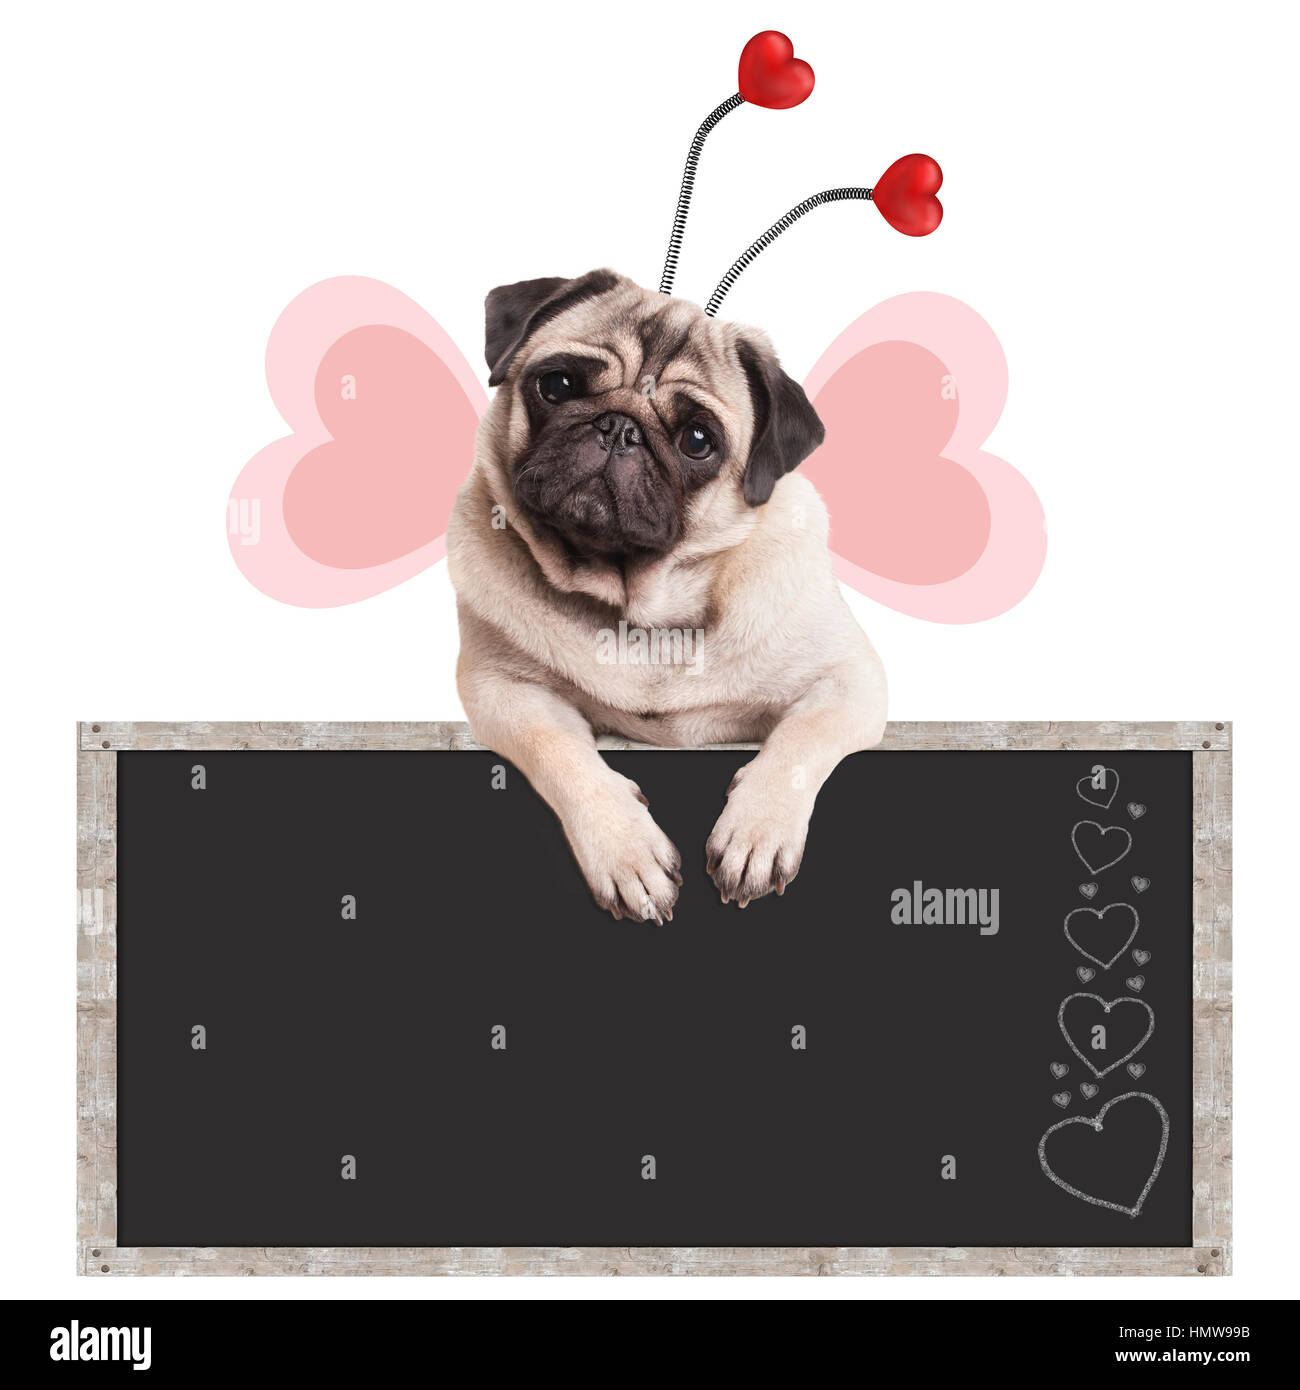 cute sweet pug puppy dog with diadem and butterfly wings leaning with paws on blackboard promotional sign, isolated Stock Photo